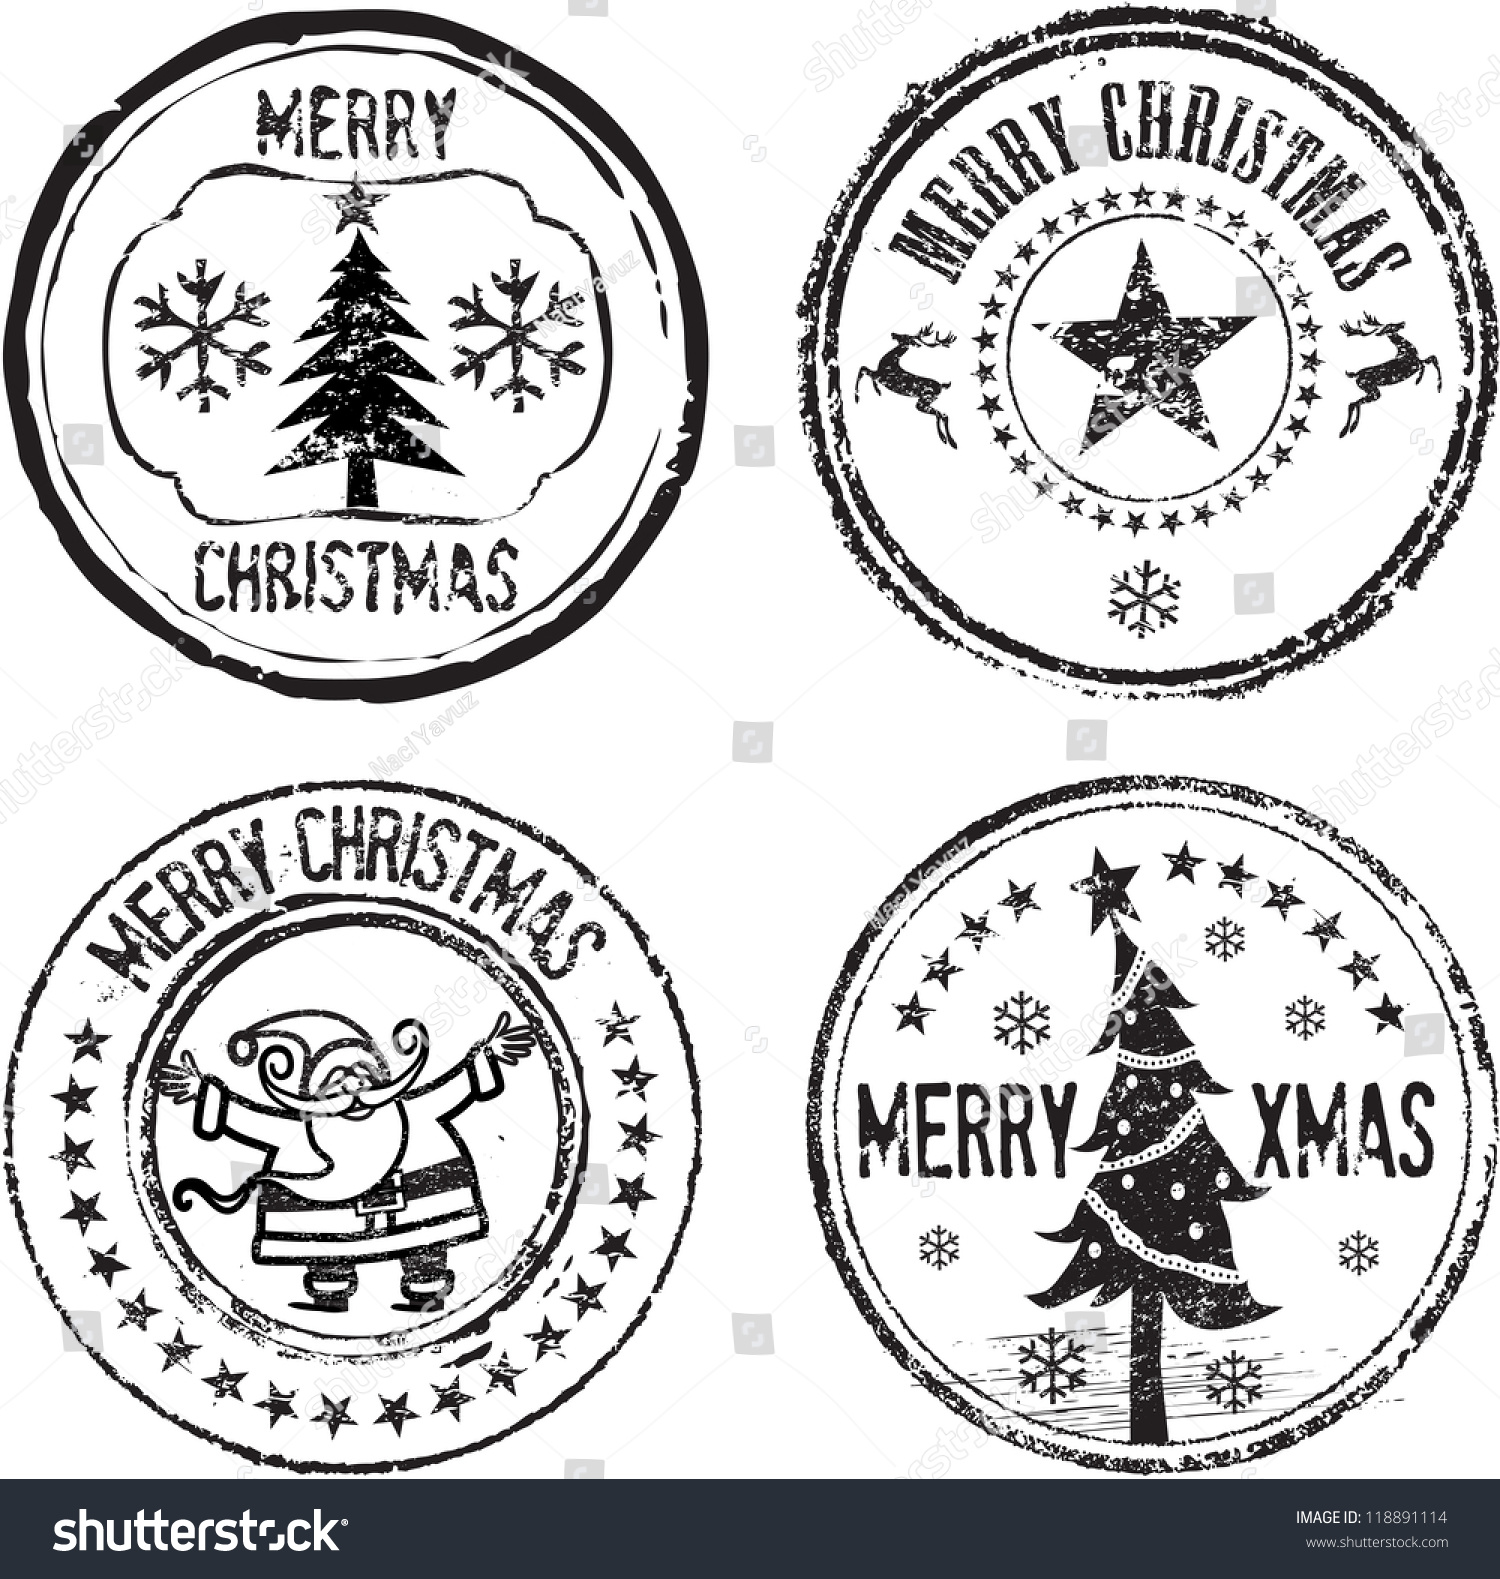 Merry Christmas Classic Stamp Set Stock Vector 118891114 ...